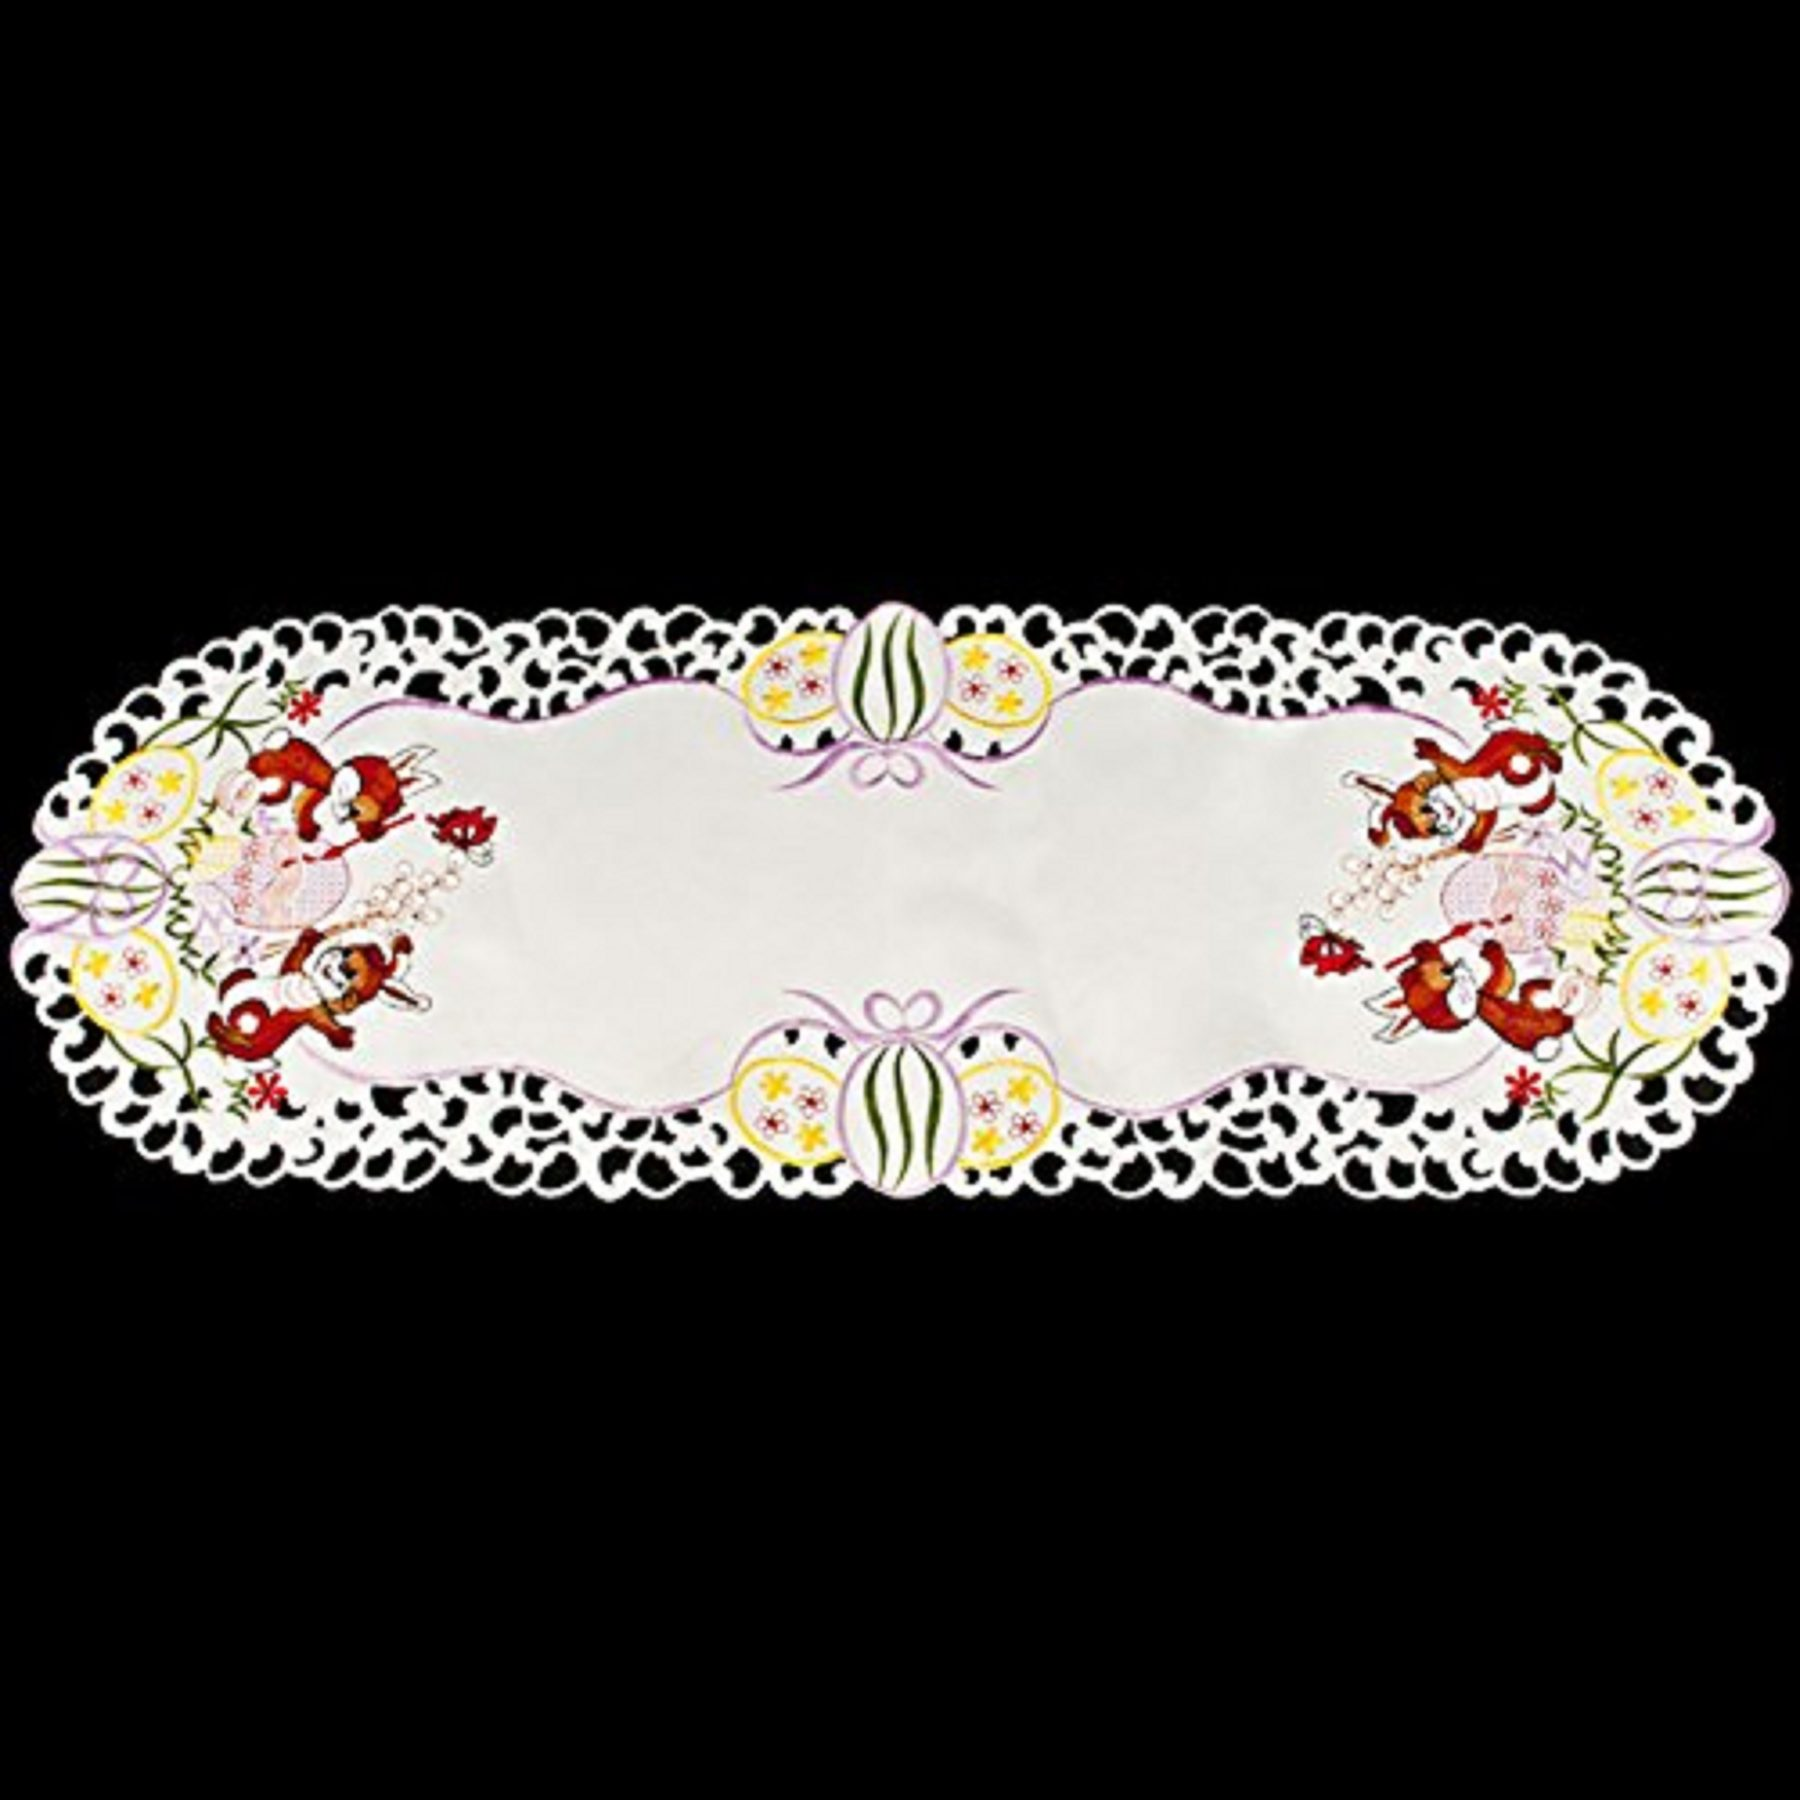 embroidered eggs & bunnies table runner